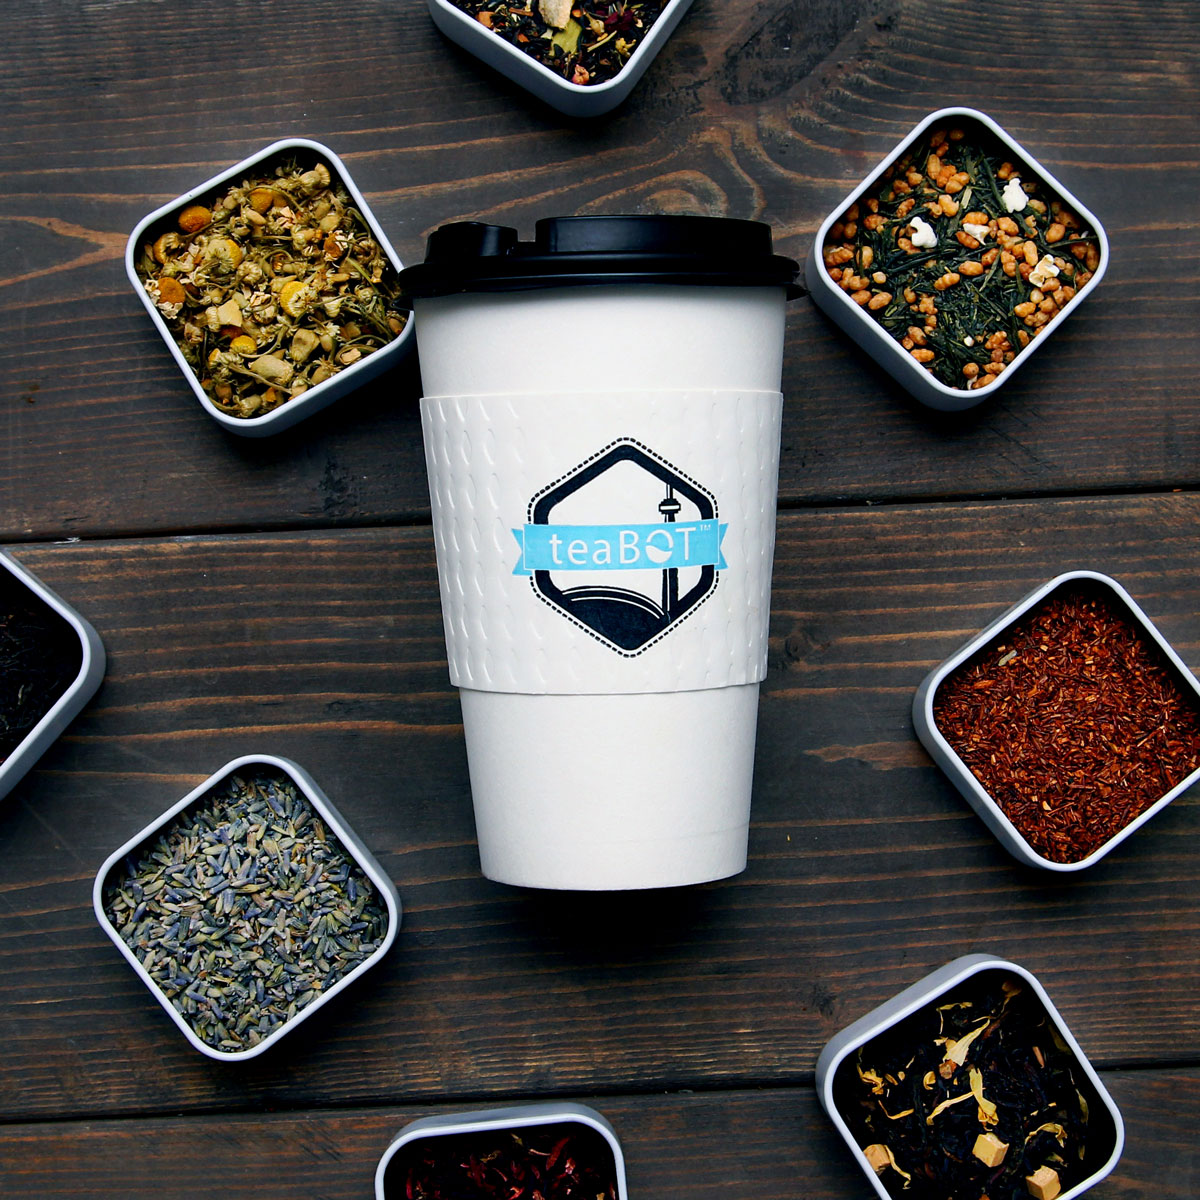 raw tea and to-go cup